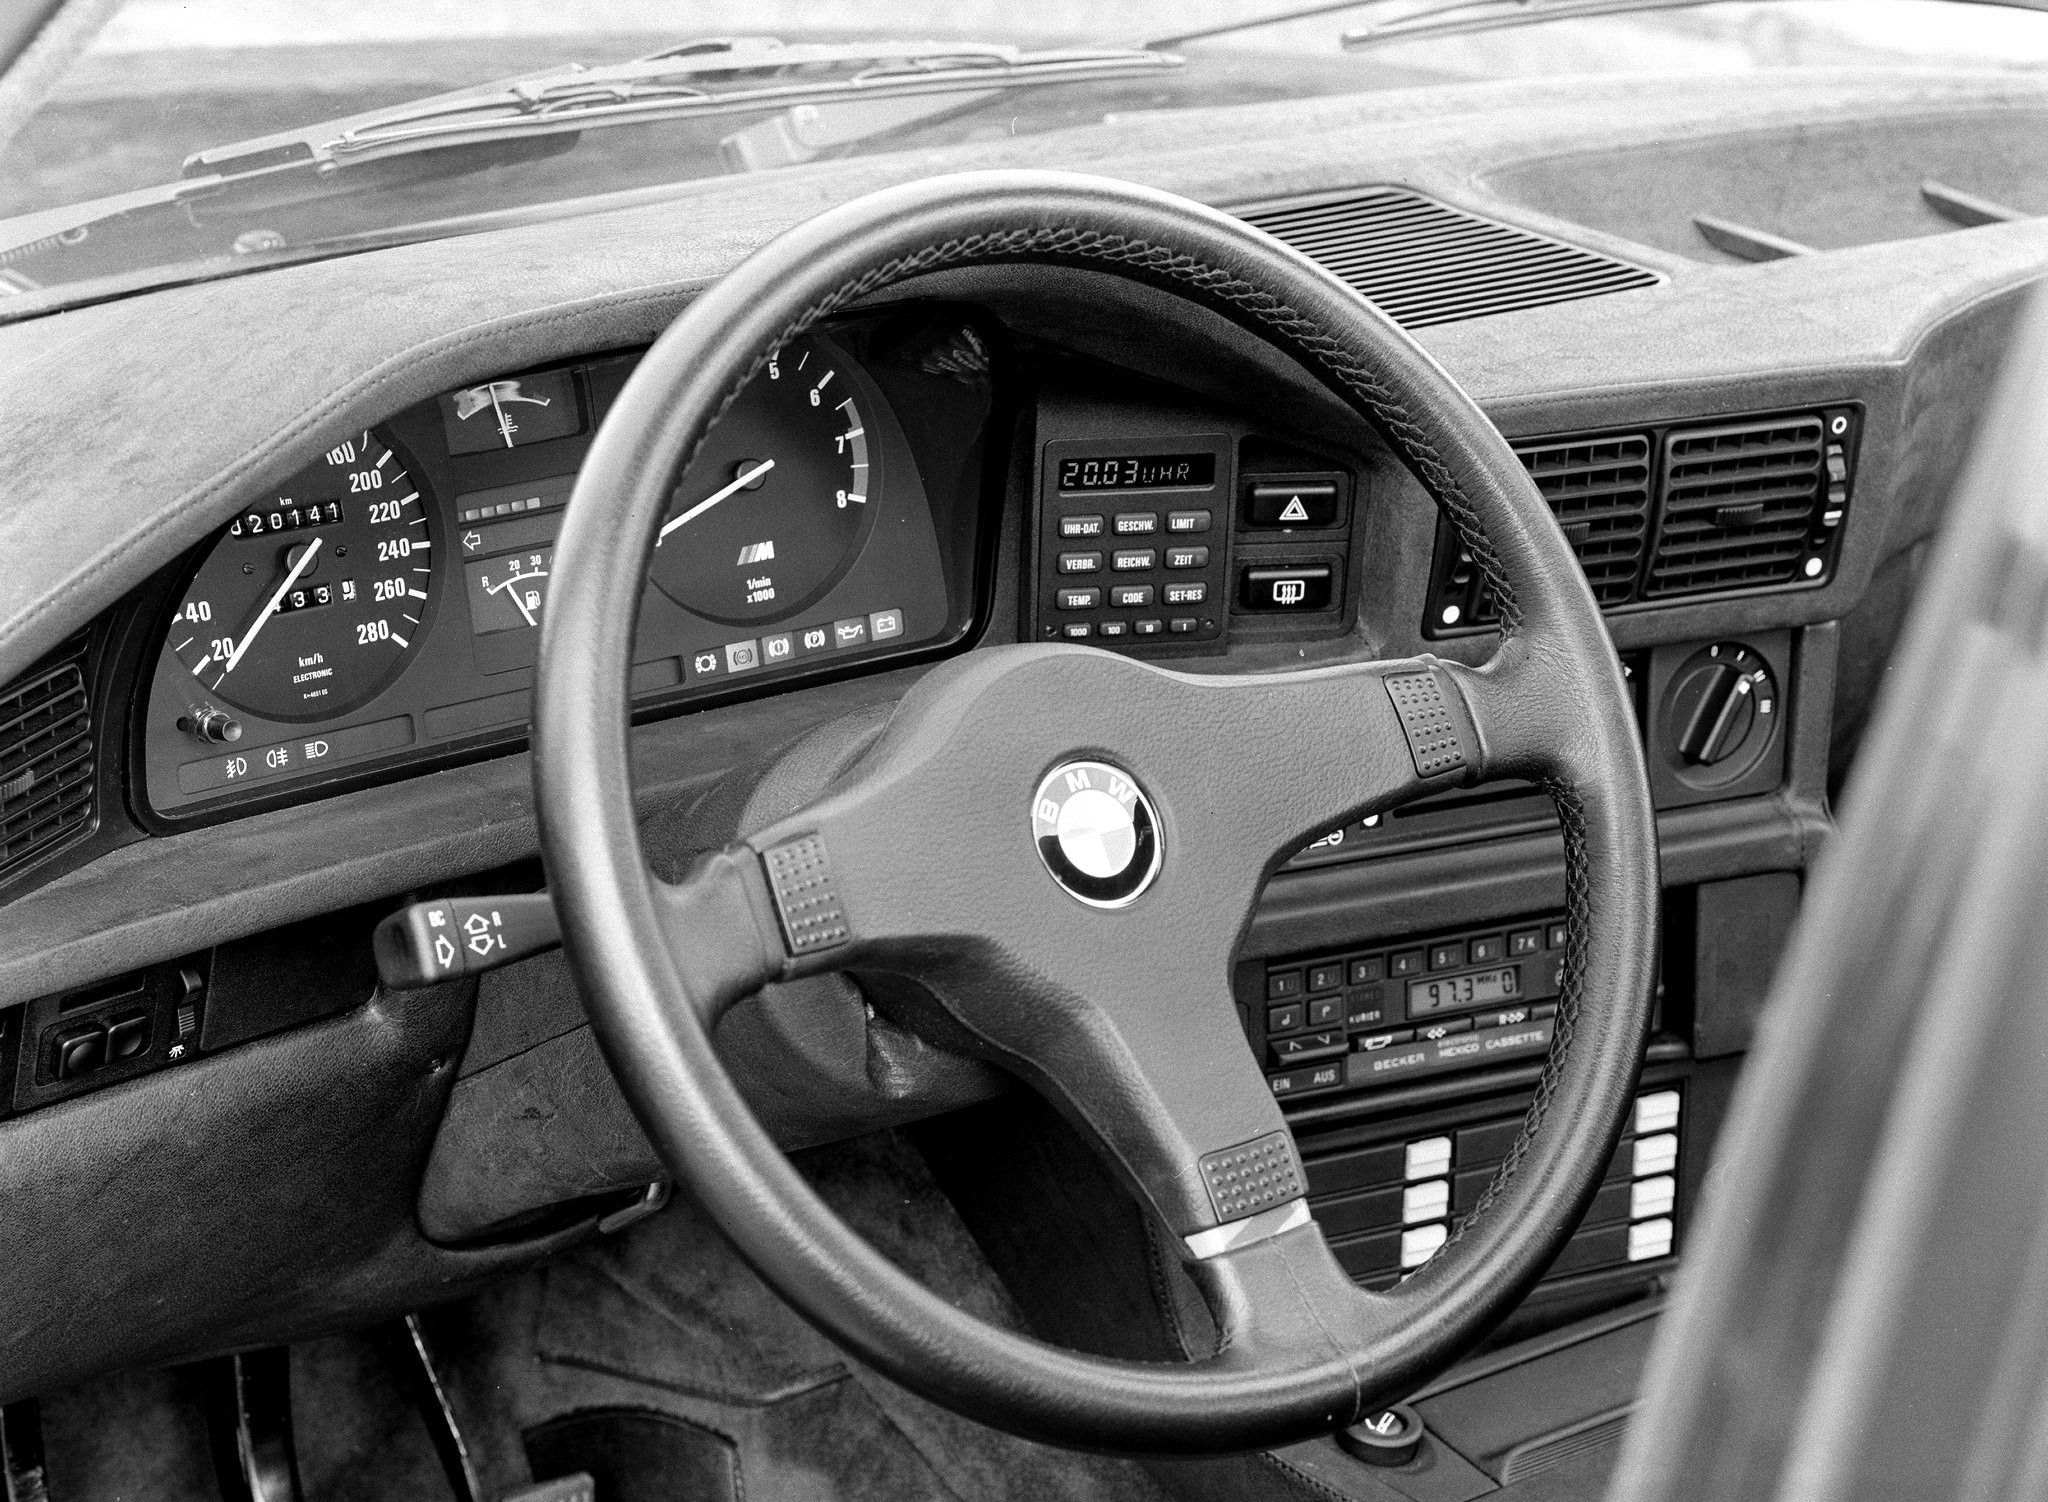 E28 BMW M5 - dashboard | BMW/Alpina | Bmw dealership, Bmw m5, Bmw e28